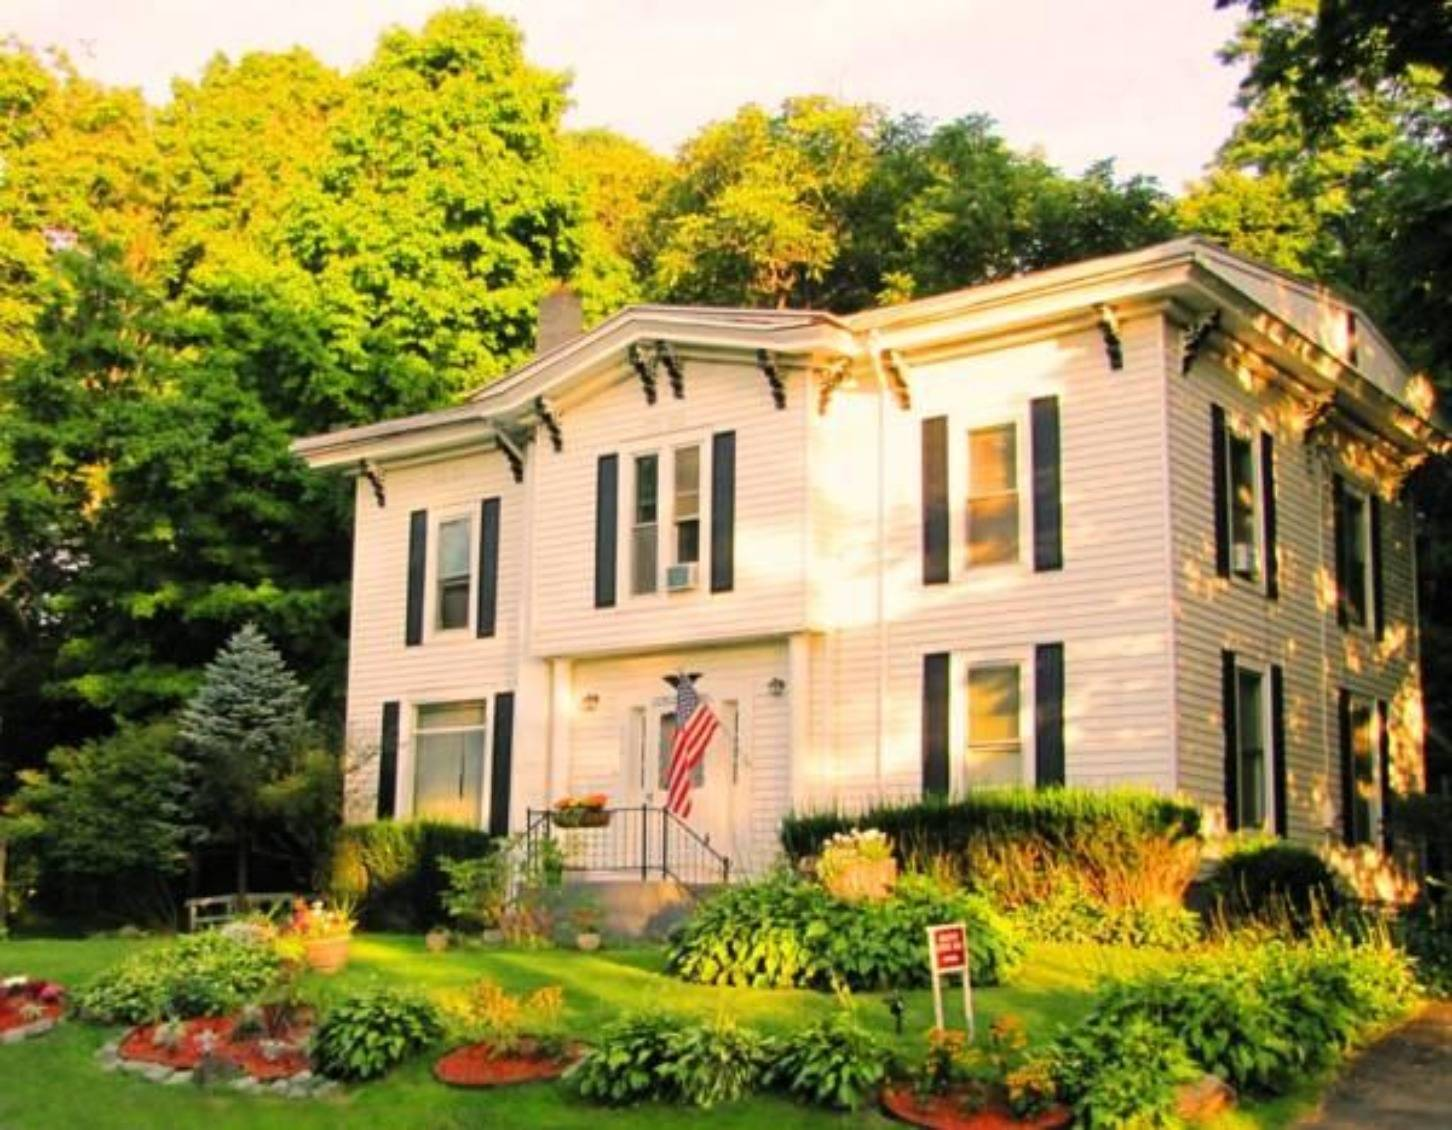 A house on the side of a building at Kountry Living Bed & Breakfast.